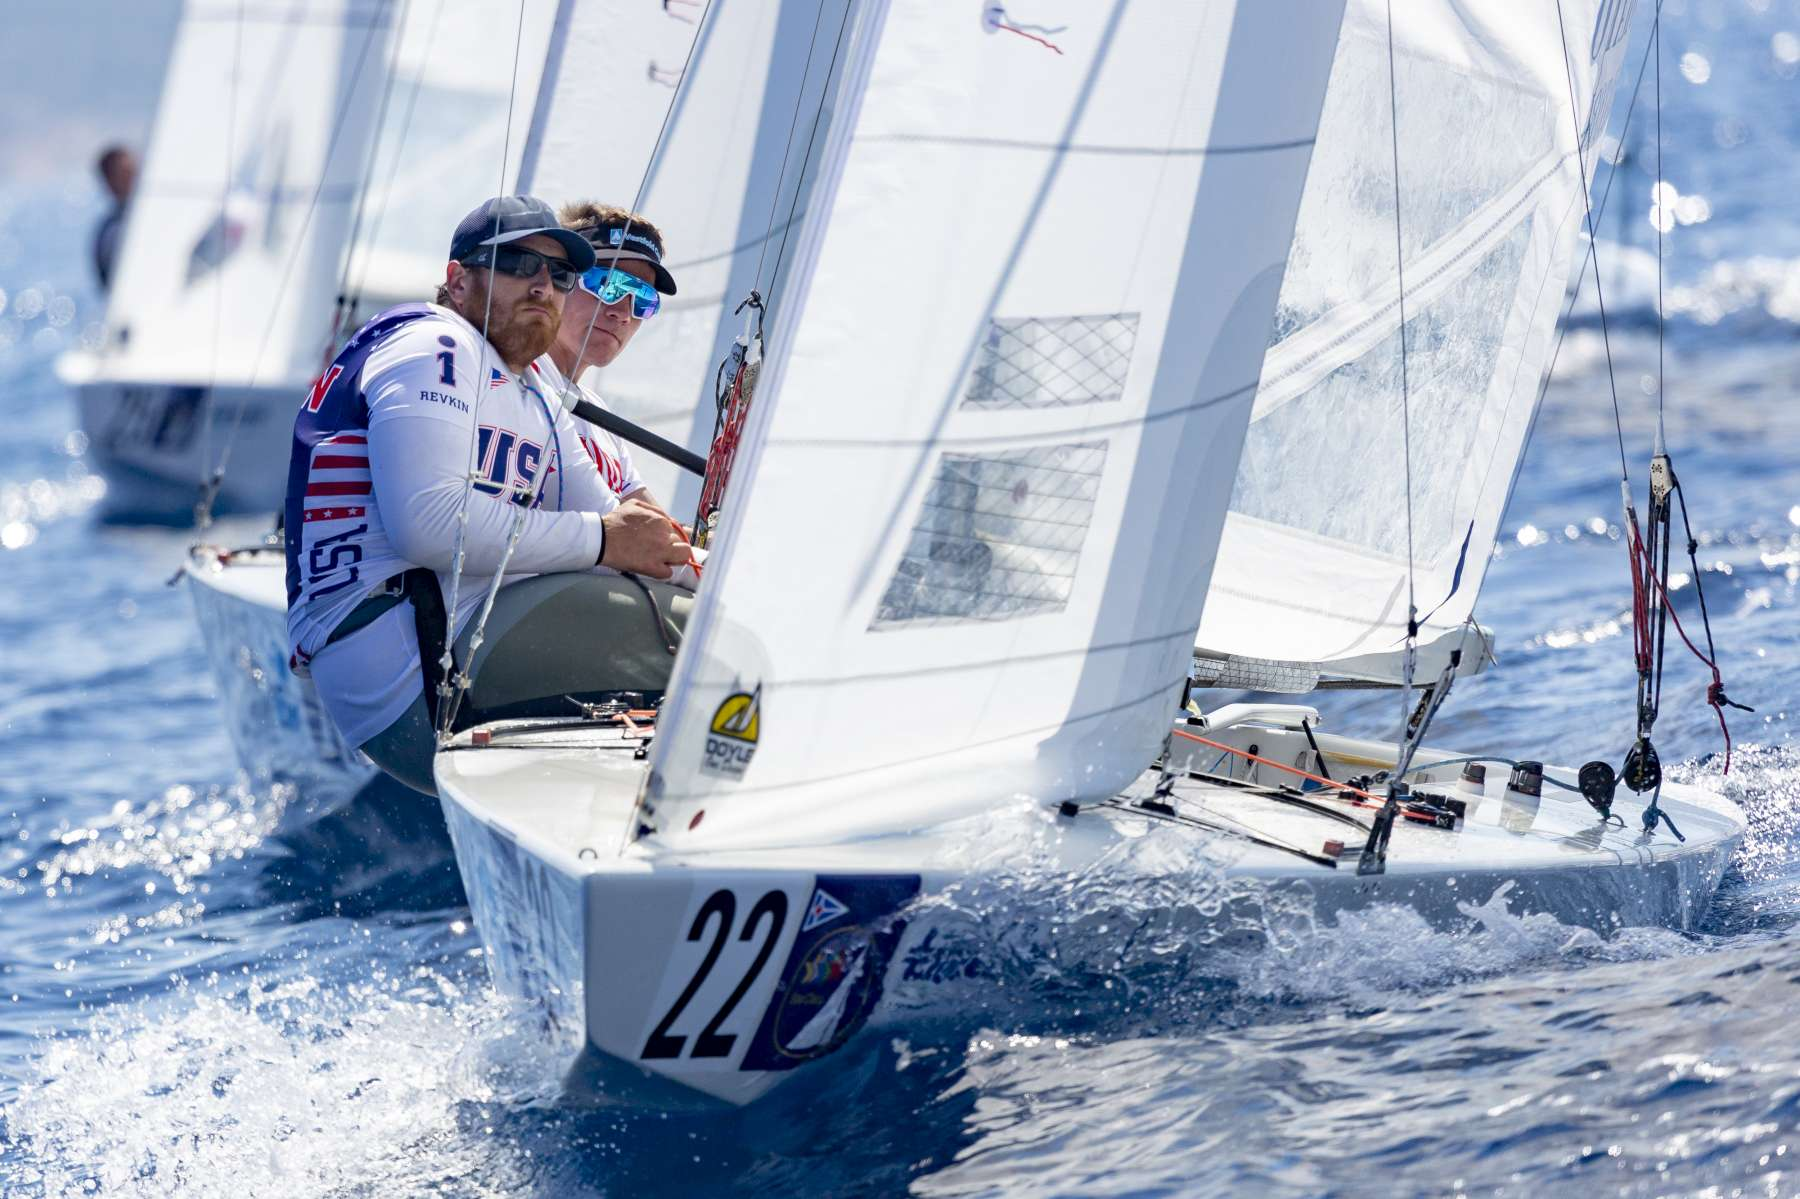 Star Class World Championship: the games are still open  - NEWS - Yacht Club Costa Smeralda